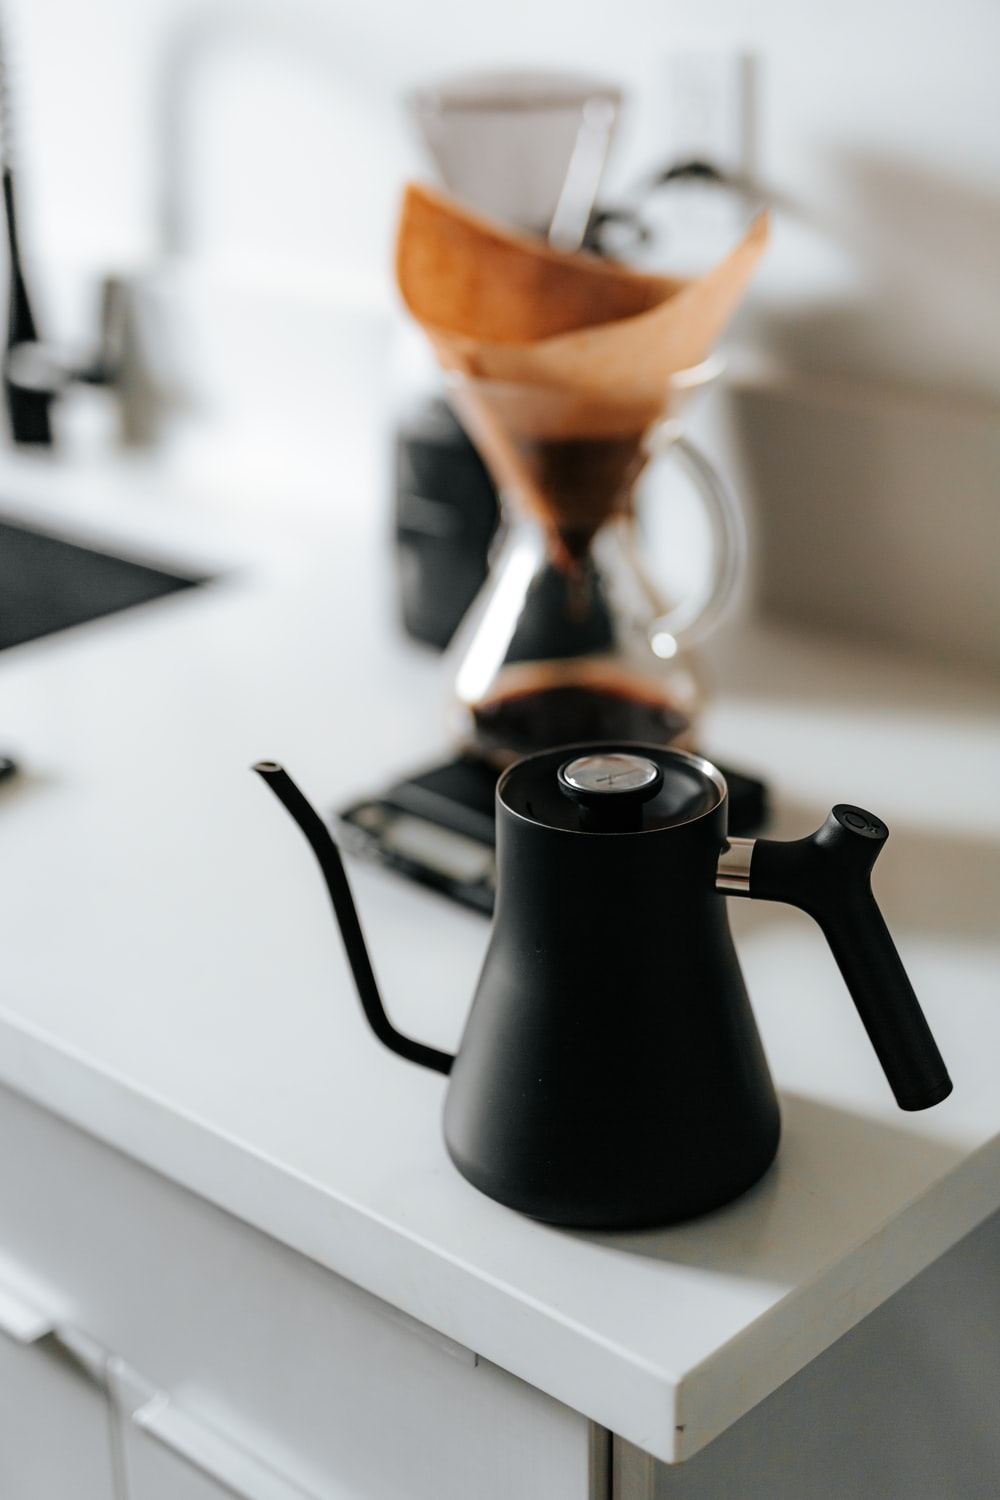 black ceramic teapot pouring brown liquid on black ceramic mug